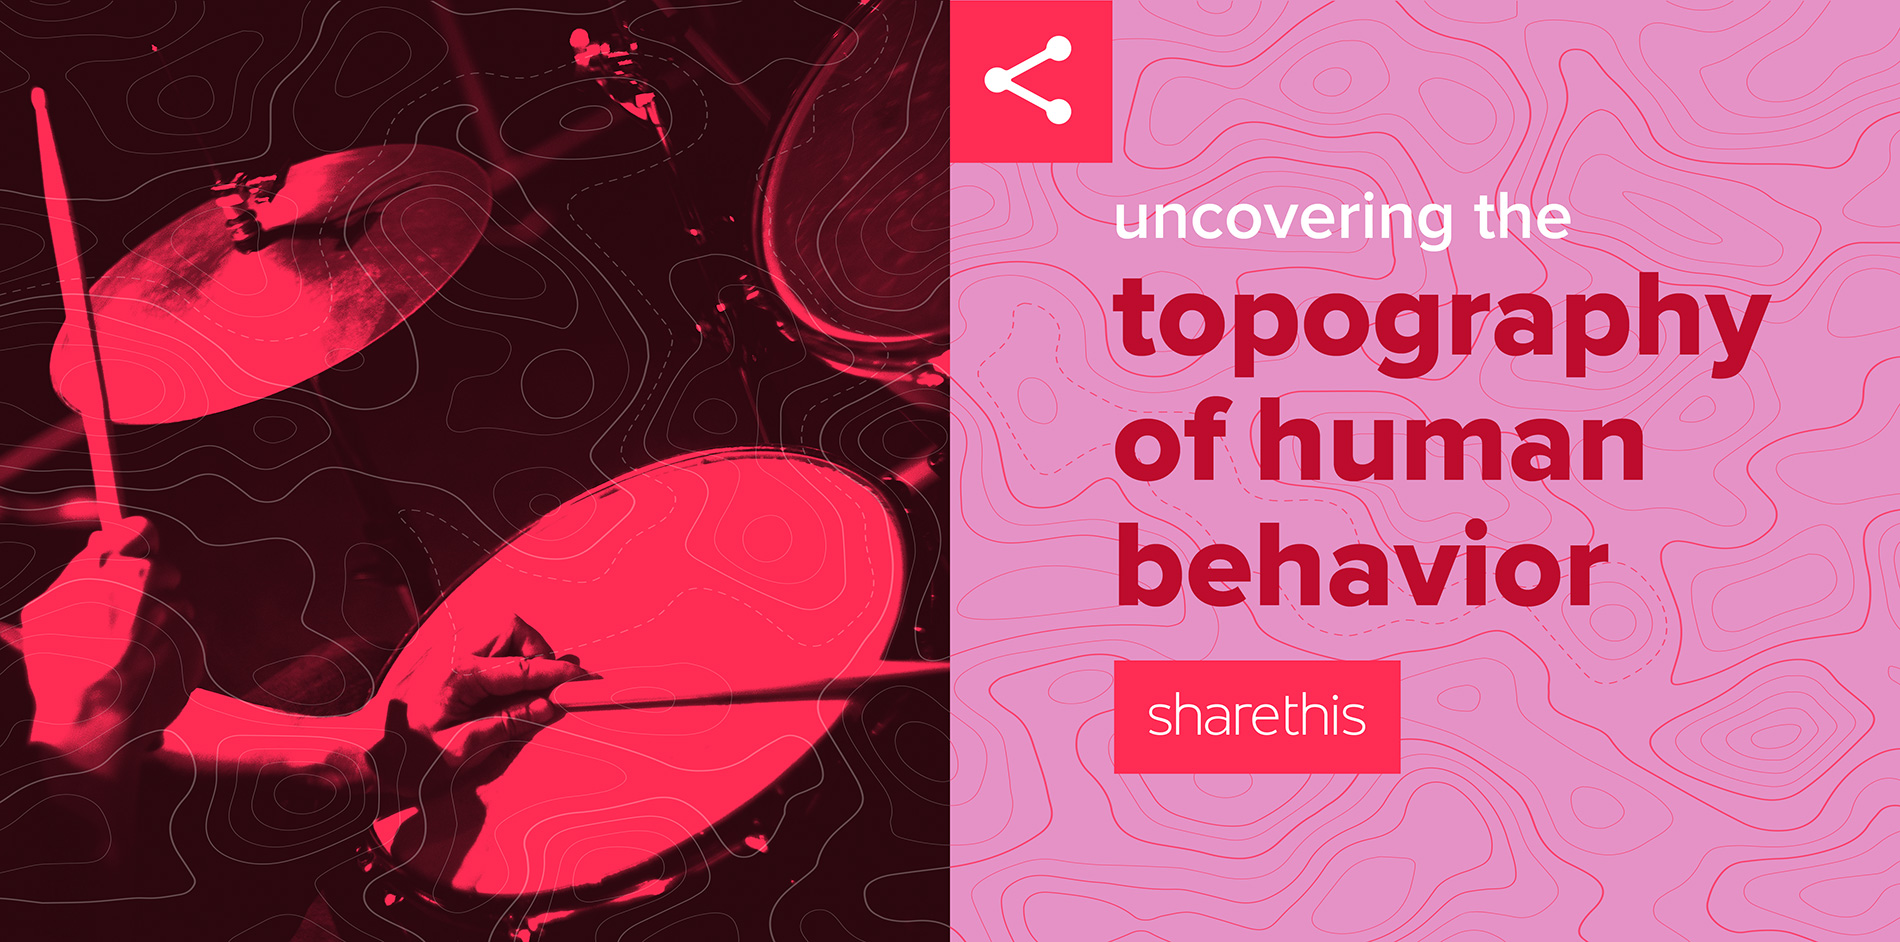 ShareThis - Uncovering the topography of human behavior